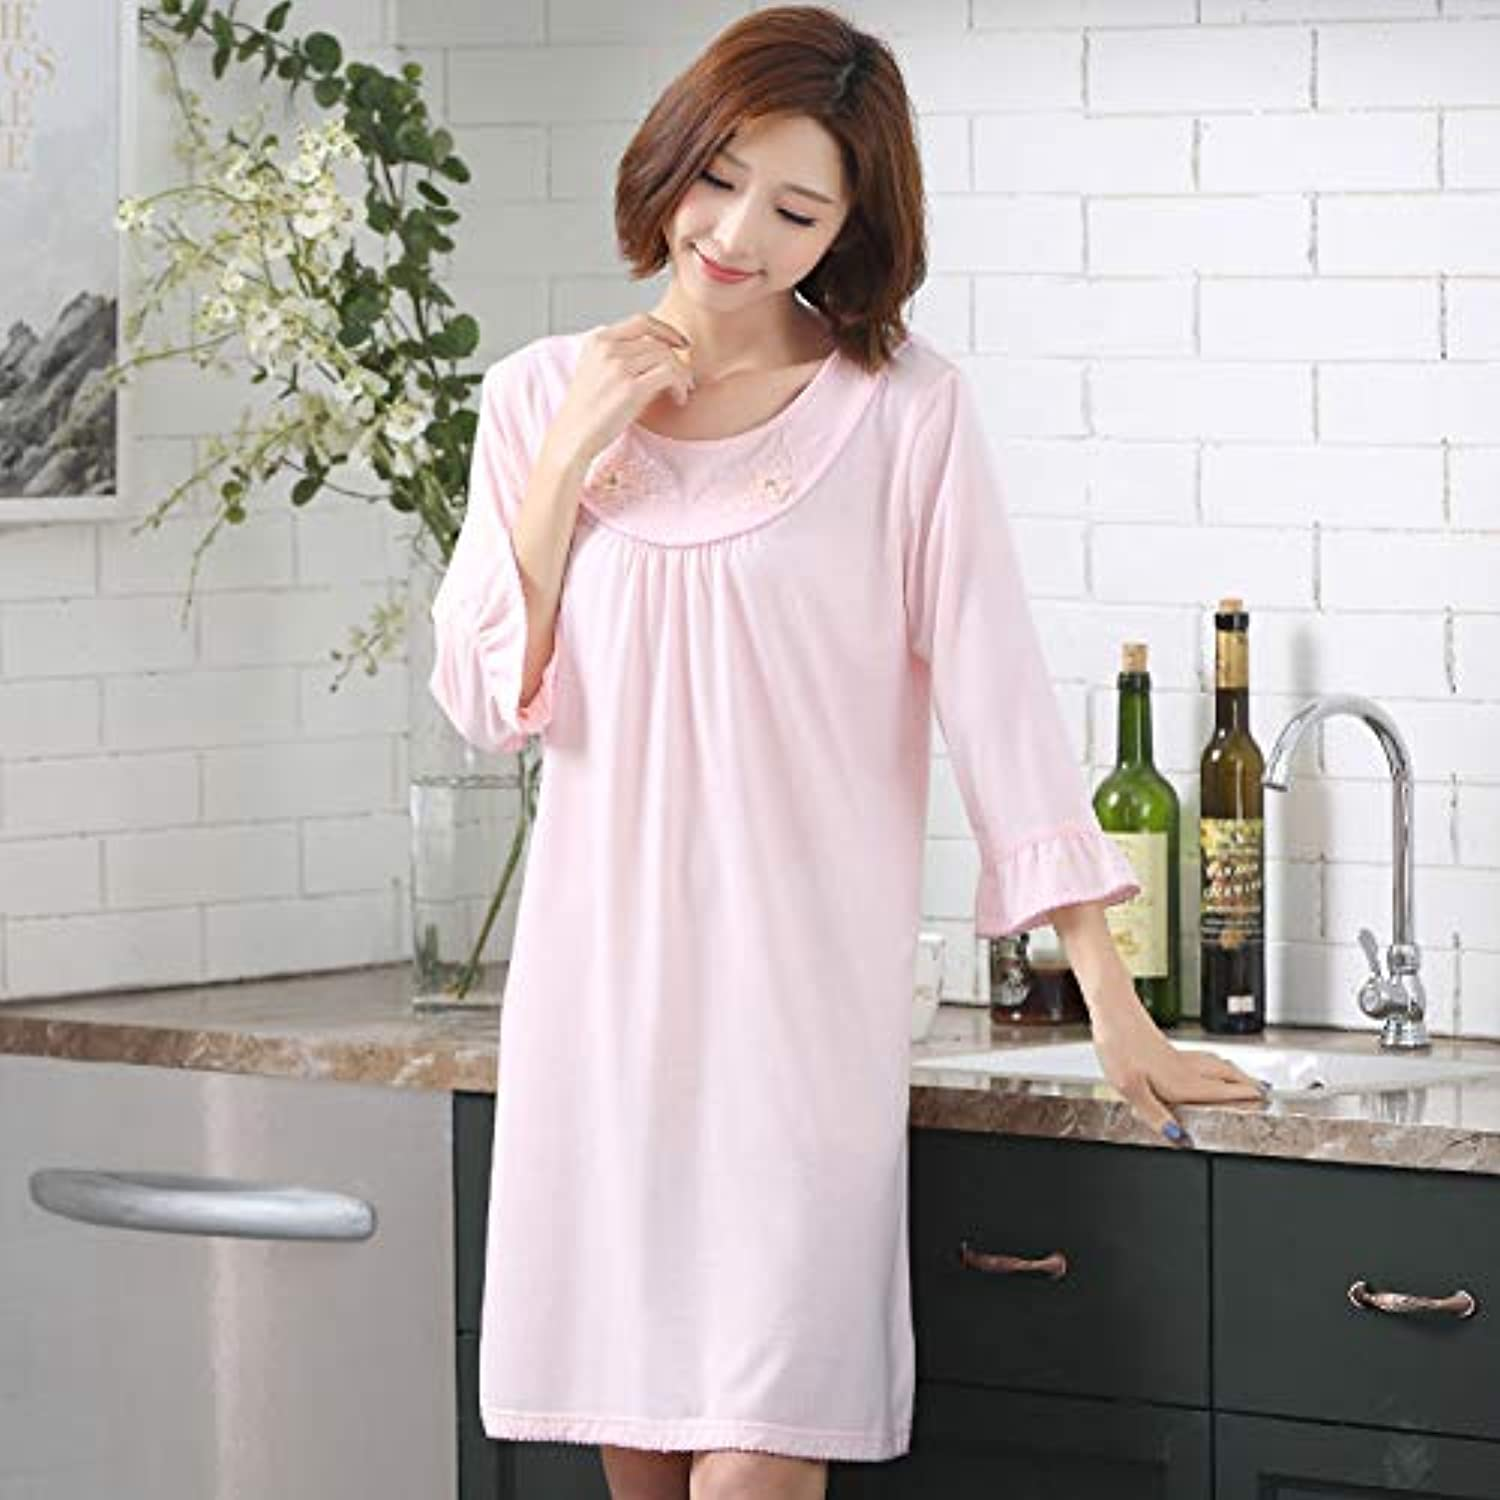 IANXI Home Summer Nightdress Ladies Cotton Thin Section Spring and Autumn SevenPoint Sleeve Modal Mother Pajamas Large Size Home Service (color   Pink, Size   XL)